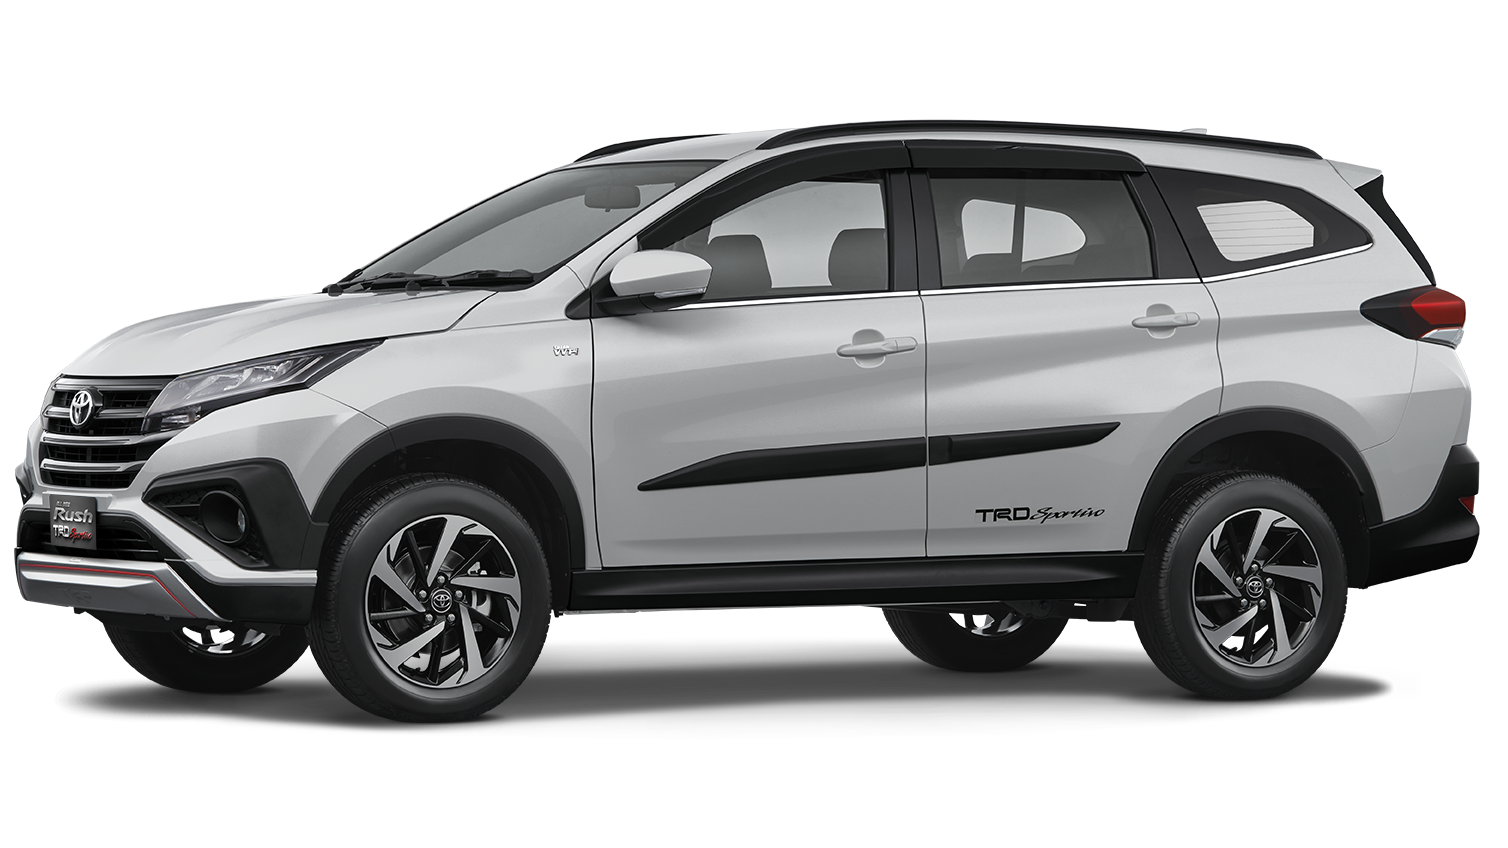 New 2018 Toyota Rush Suv Makes Debut In Indonesia Image 742829